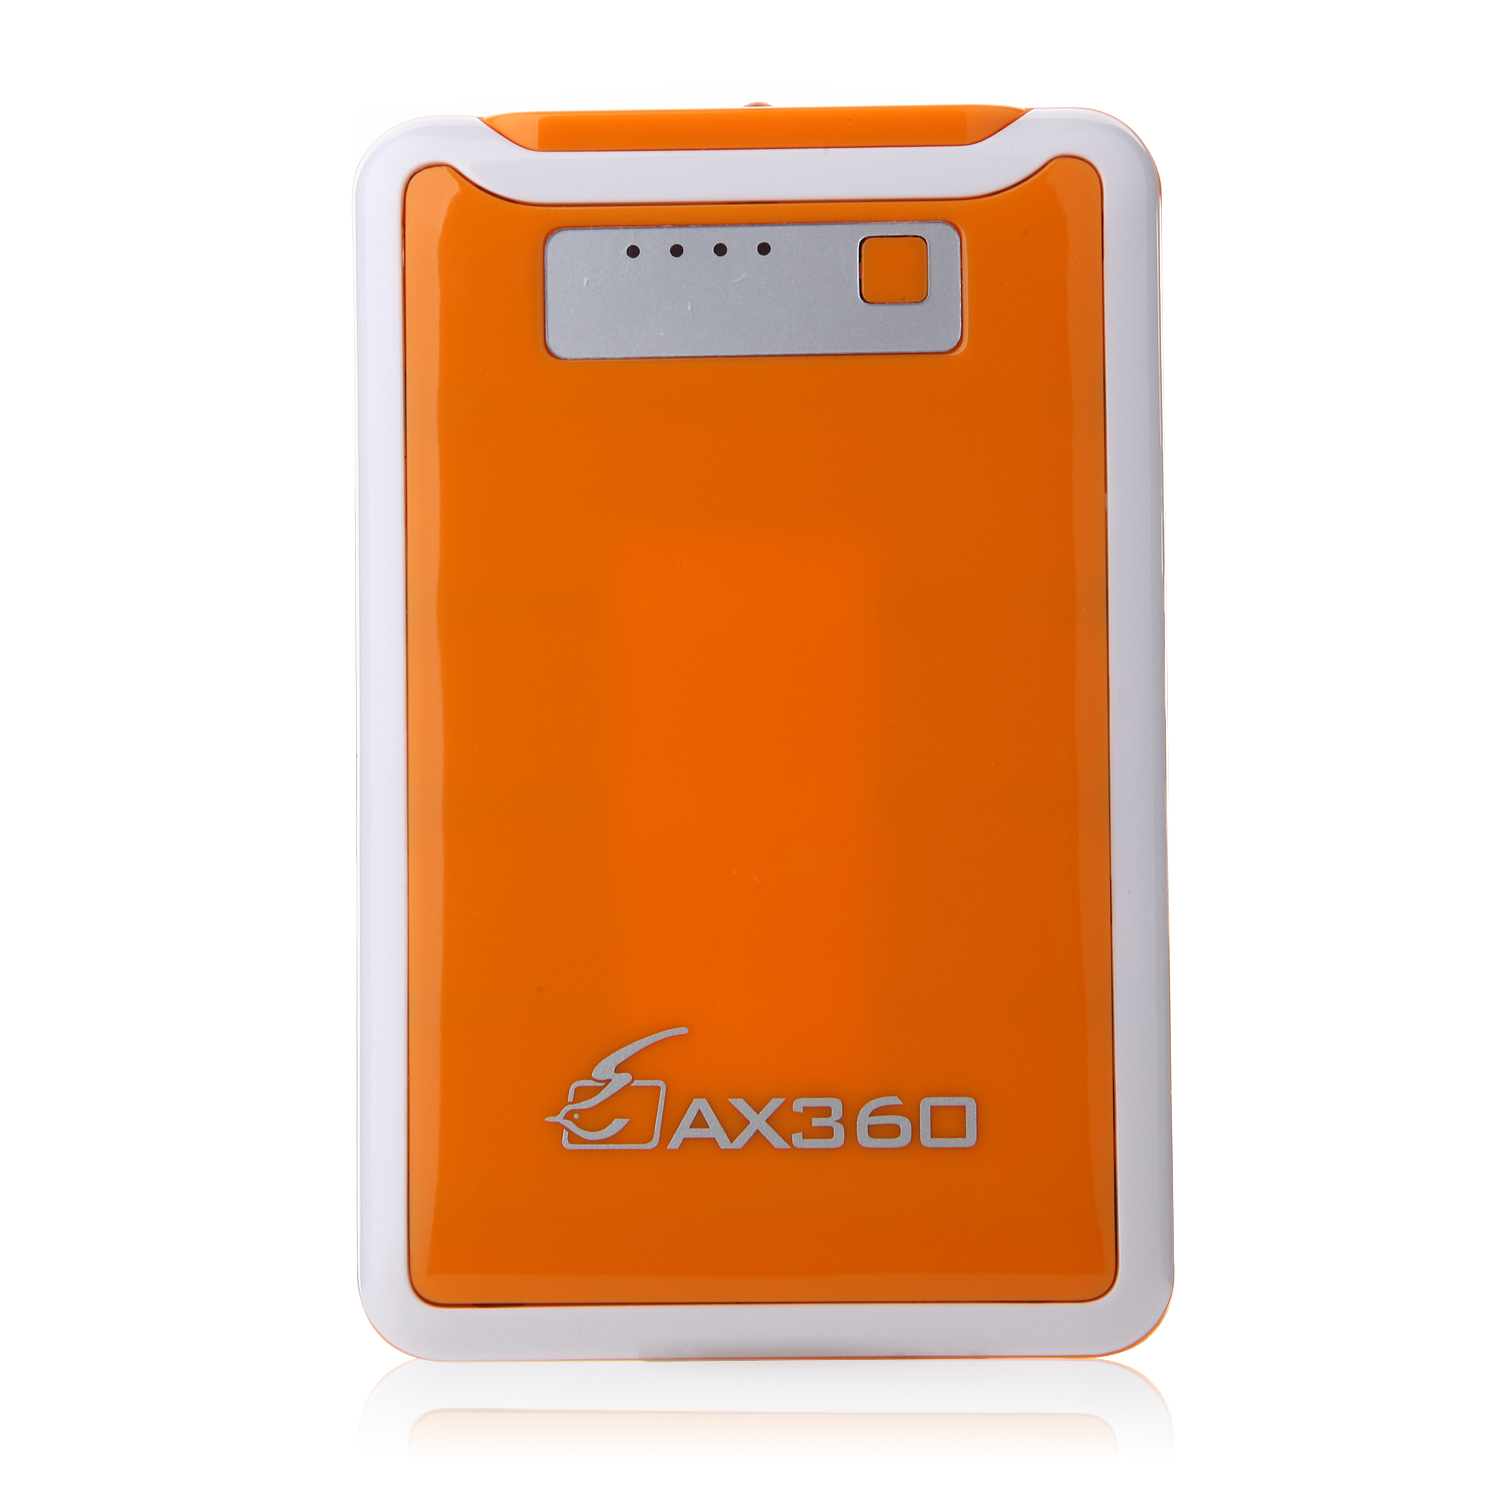 AX360 11000mAh Dual USB Power Bank for iPhone iPad Smartphone Oragne